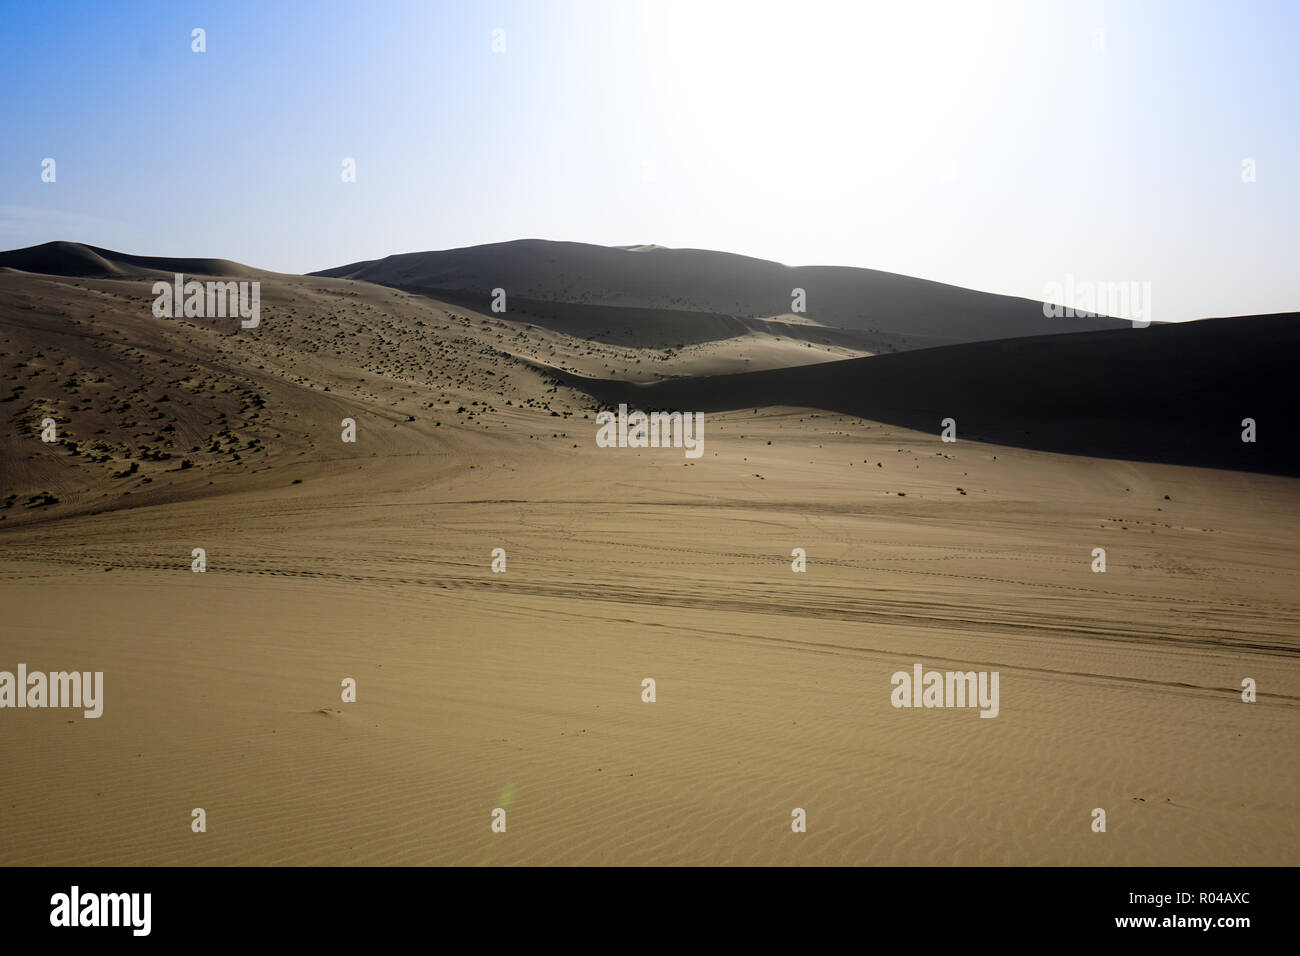 Desert sand dunes with blue sky background - Stock Image